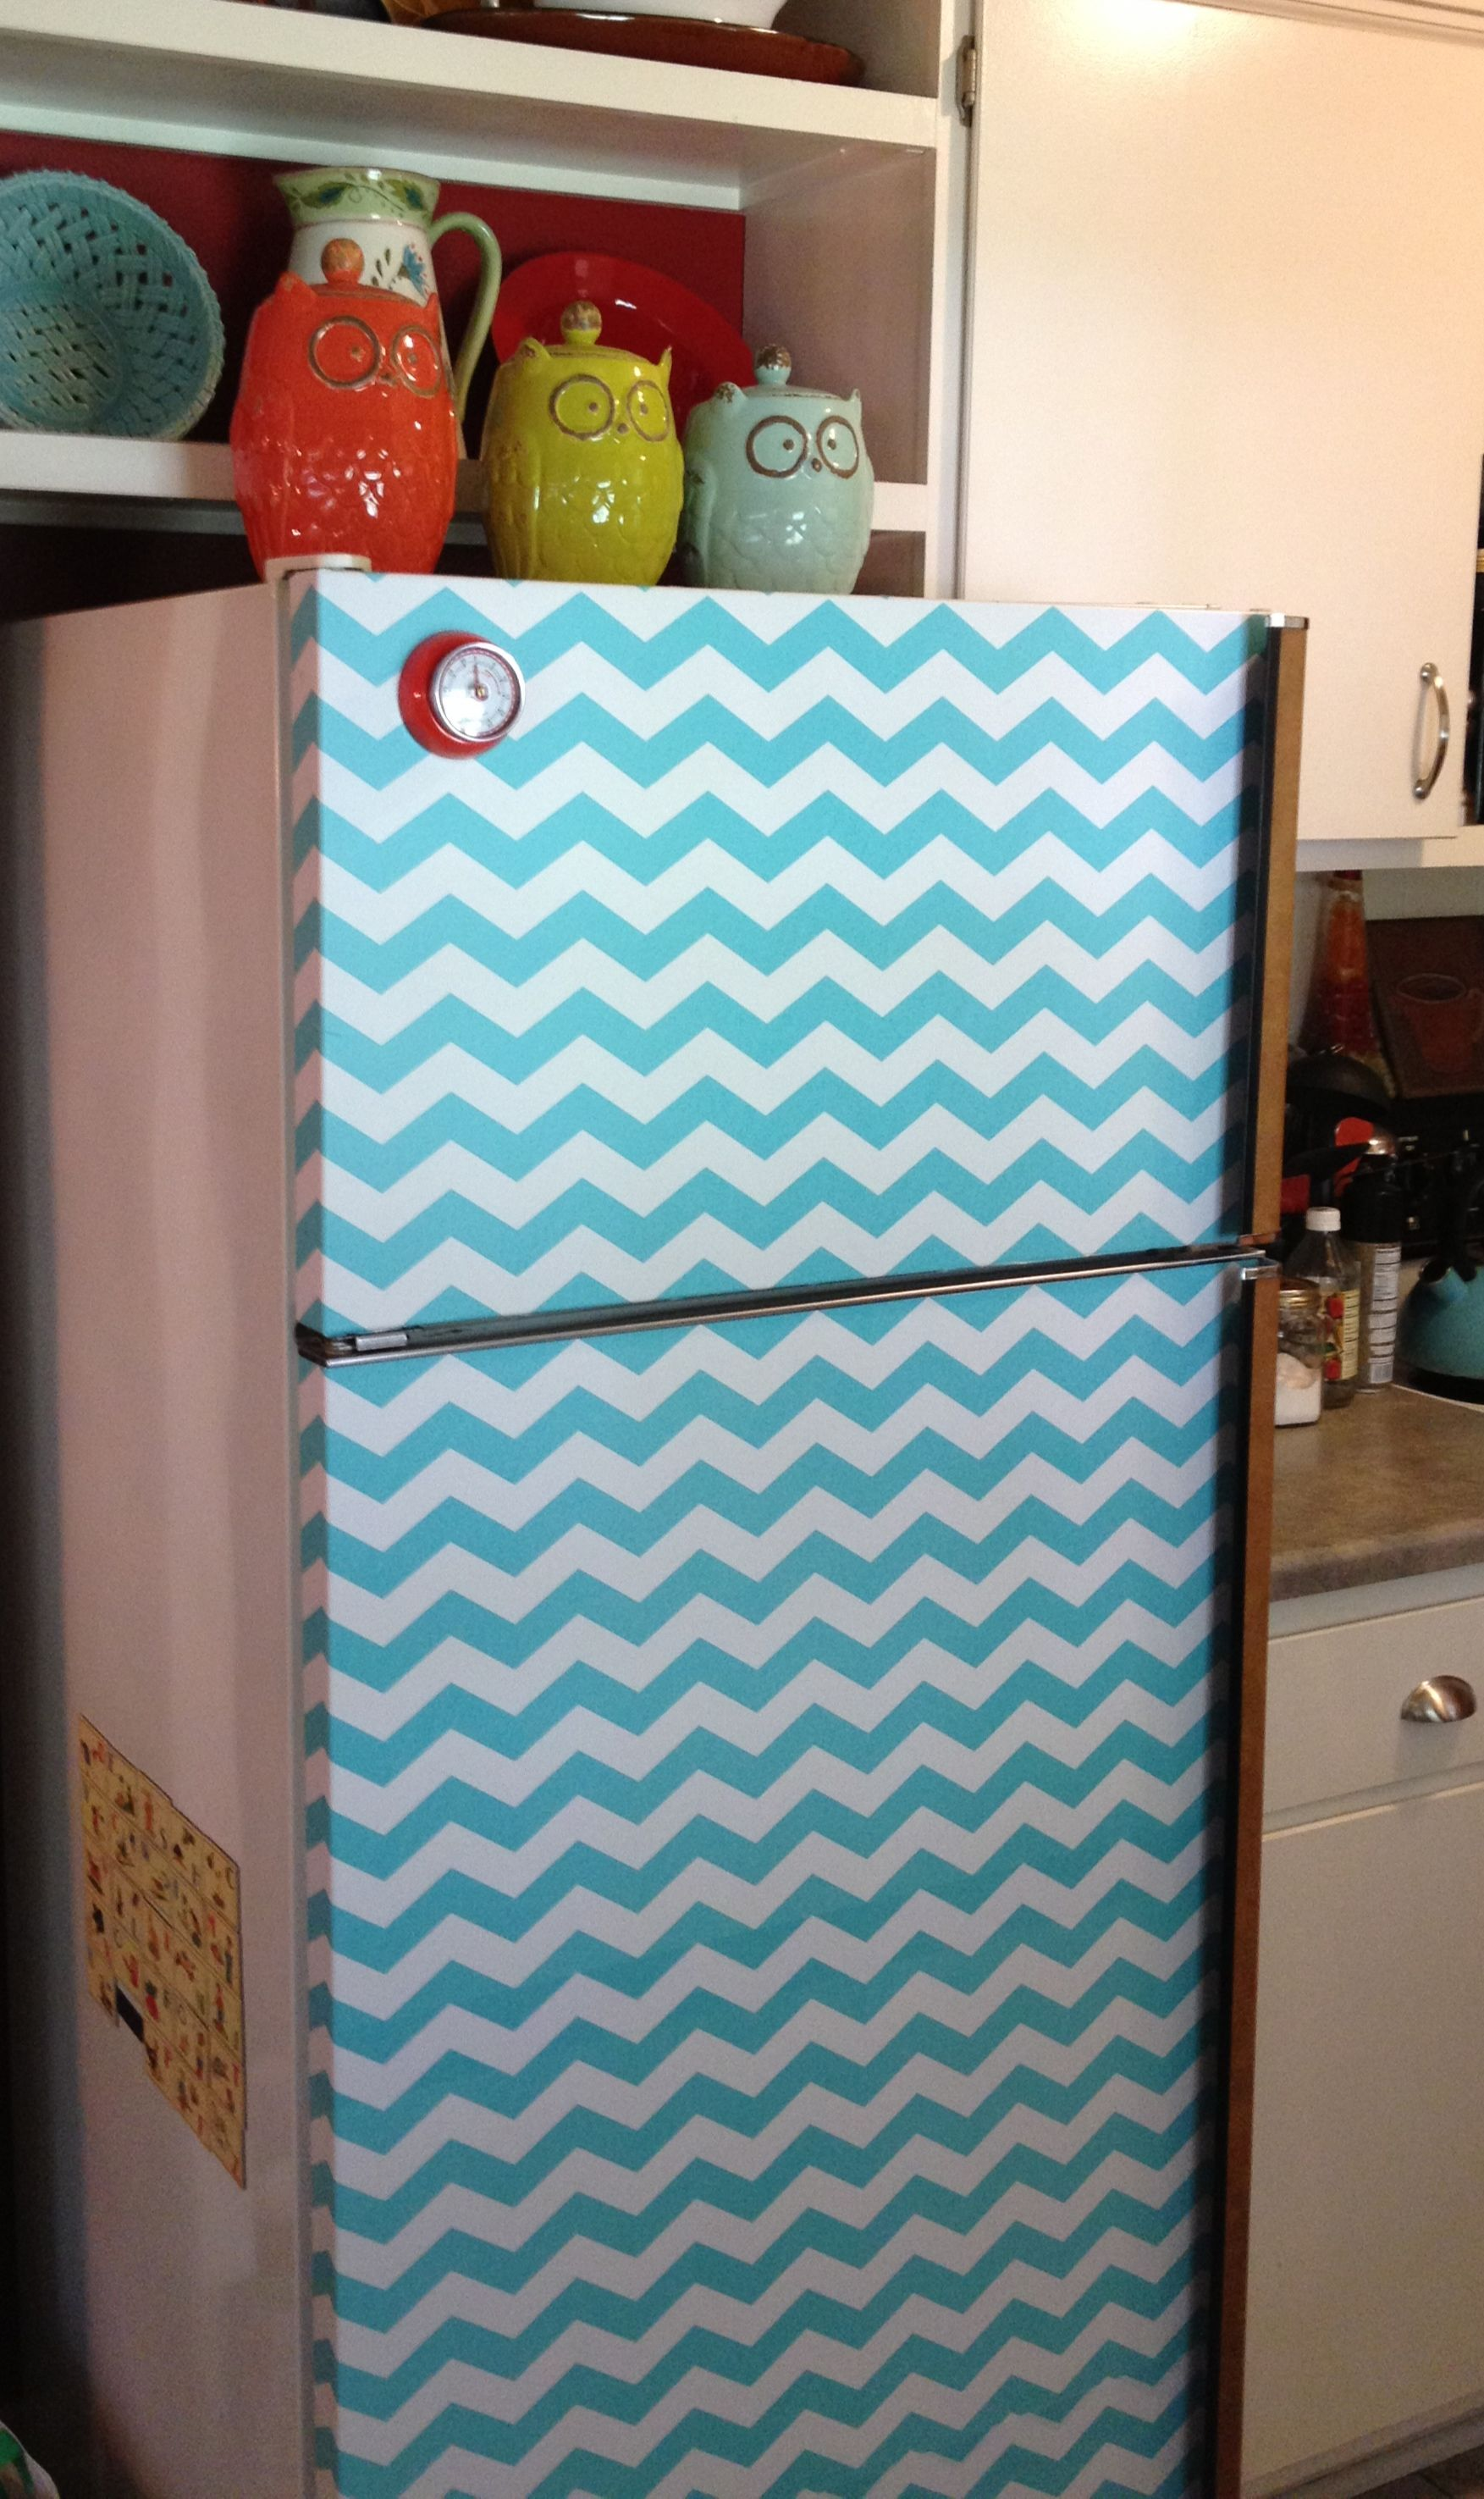 diy refrigerator make-over using self-adhesive shelf liner